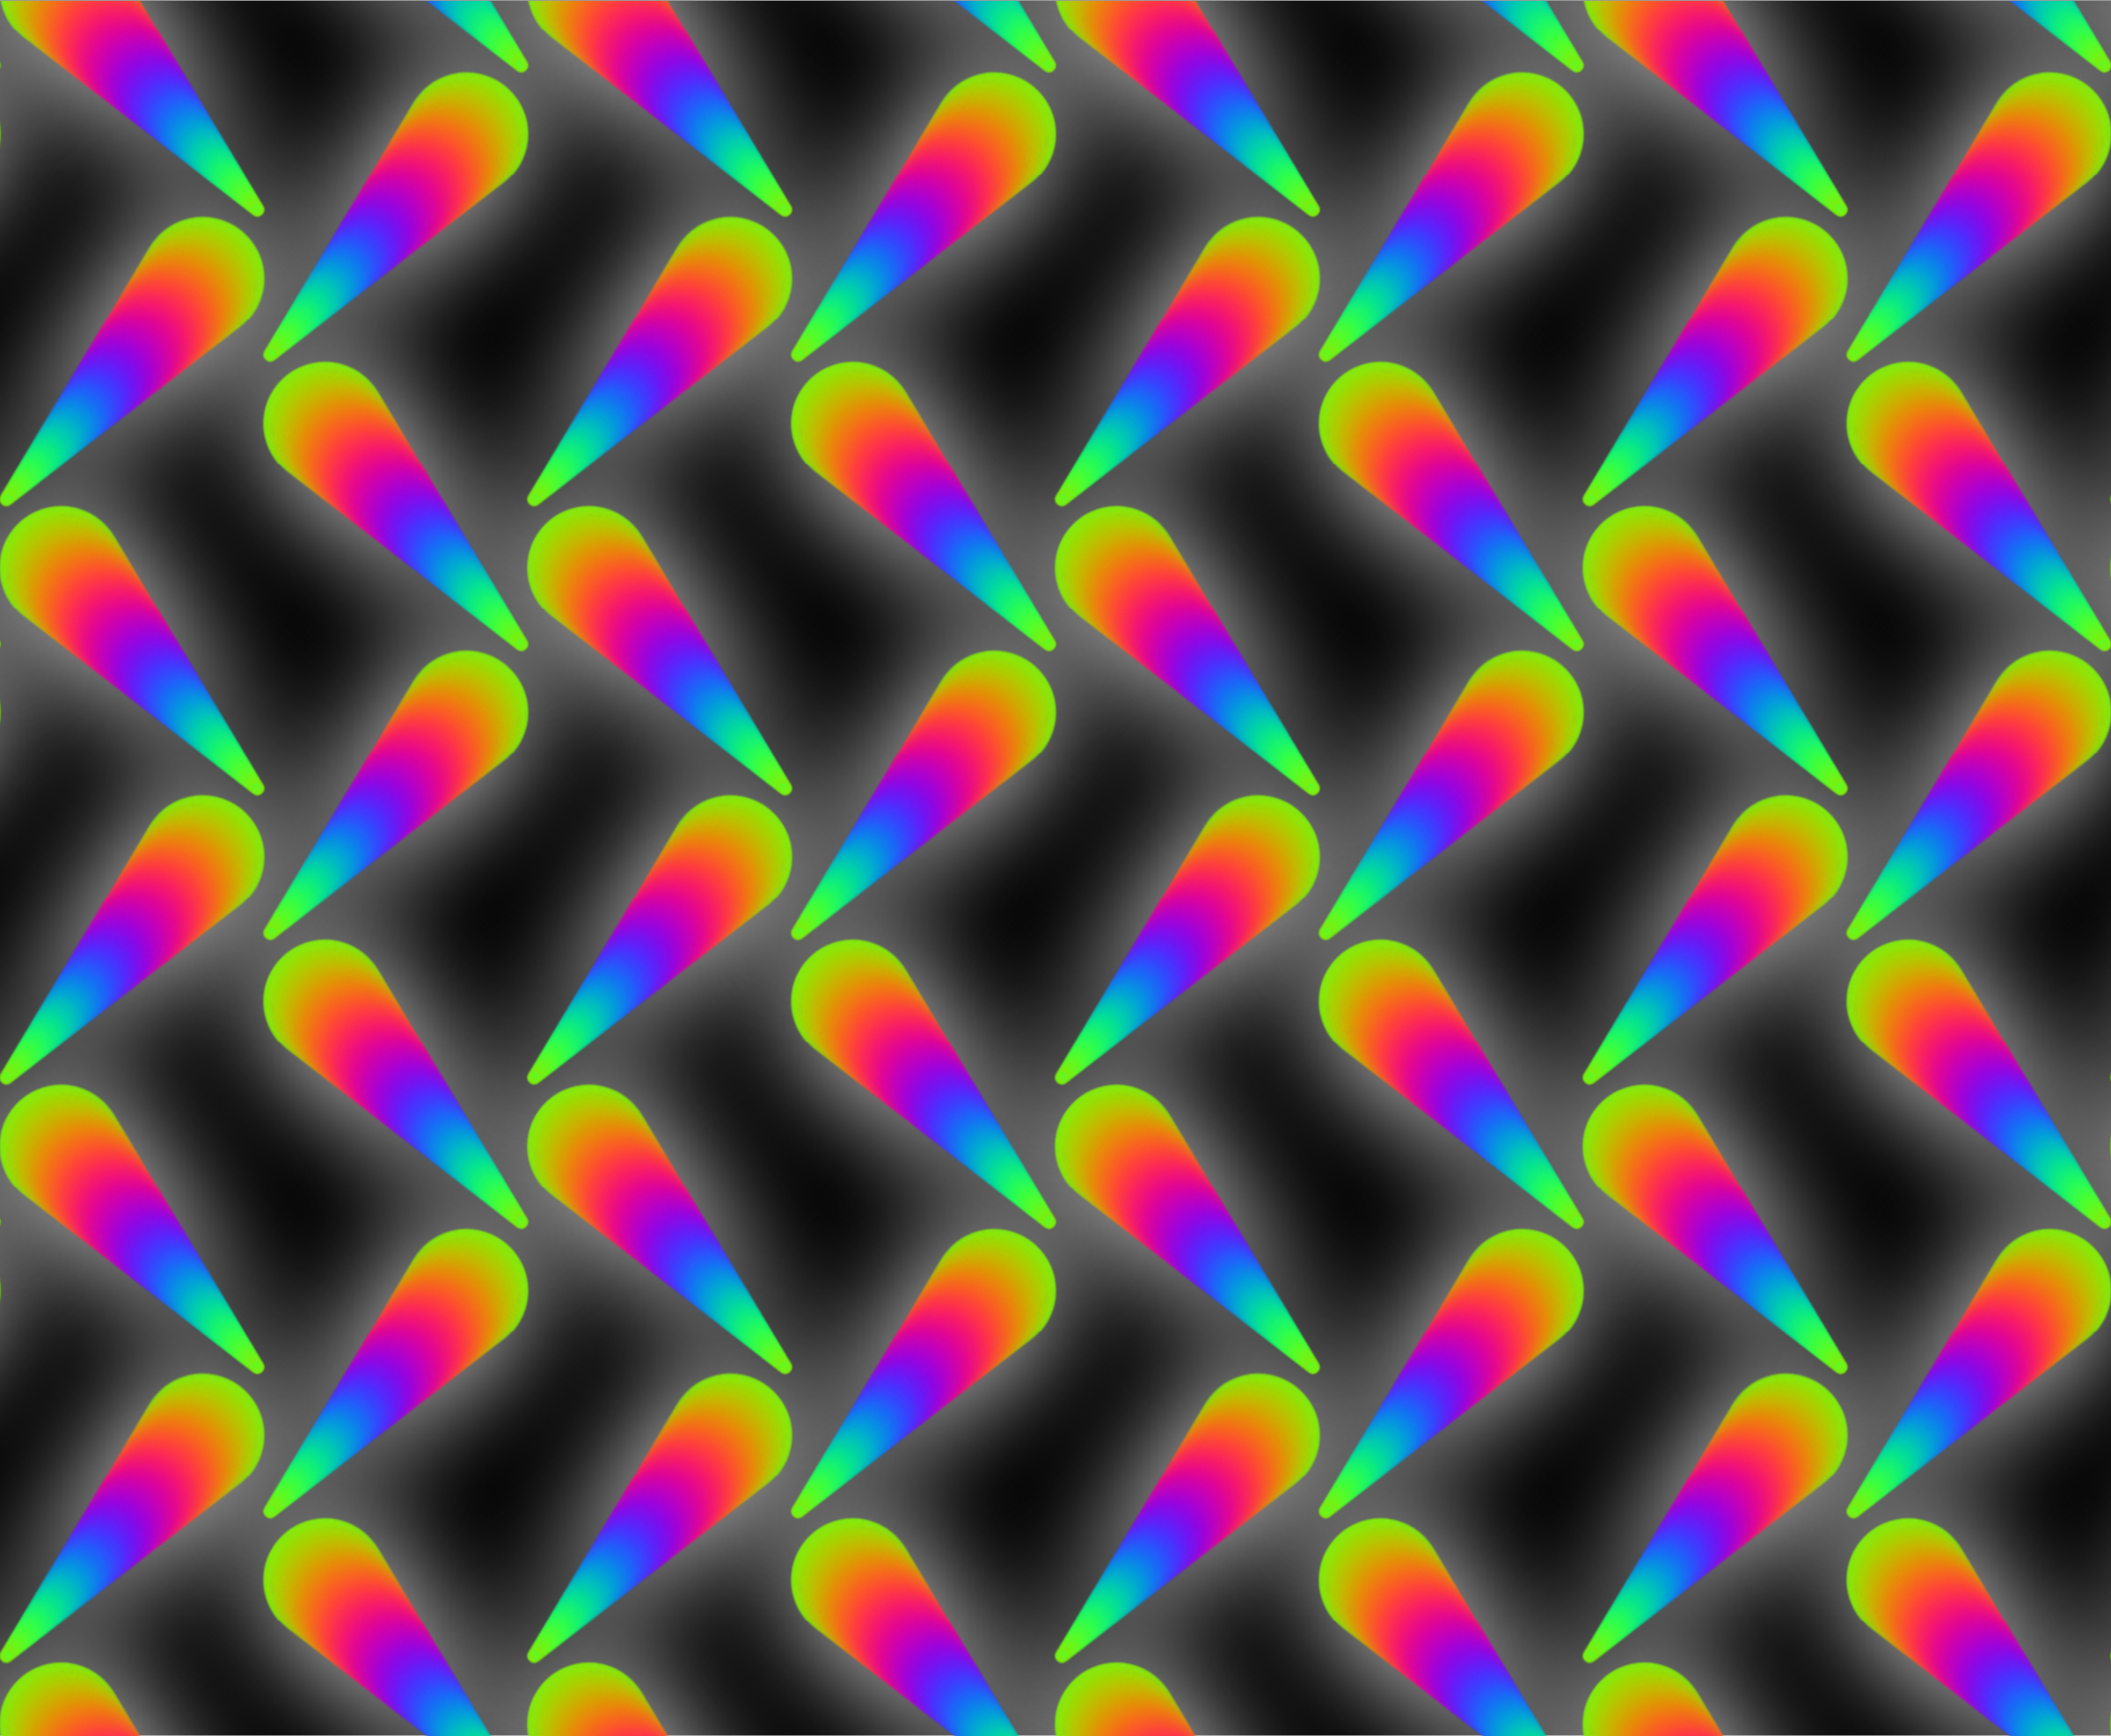 Colourful pattern 2 (black background) by Firkin